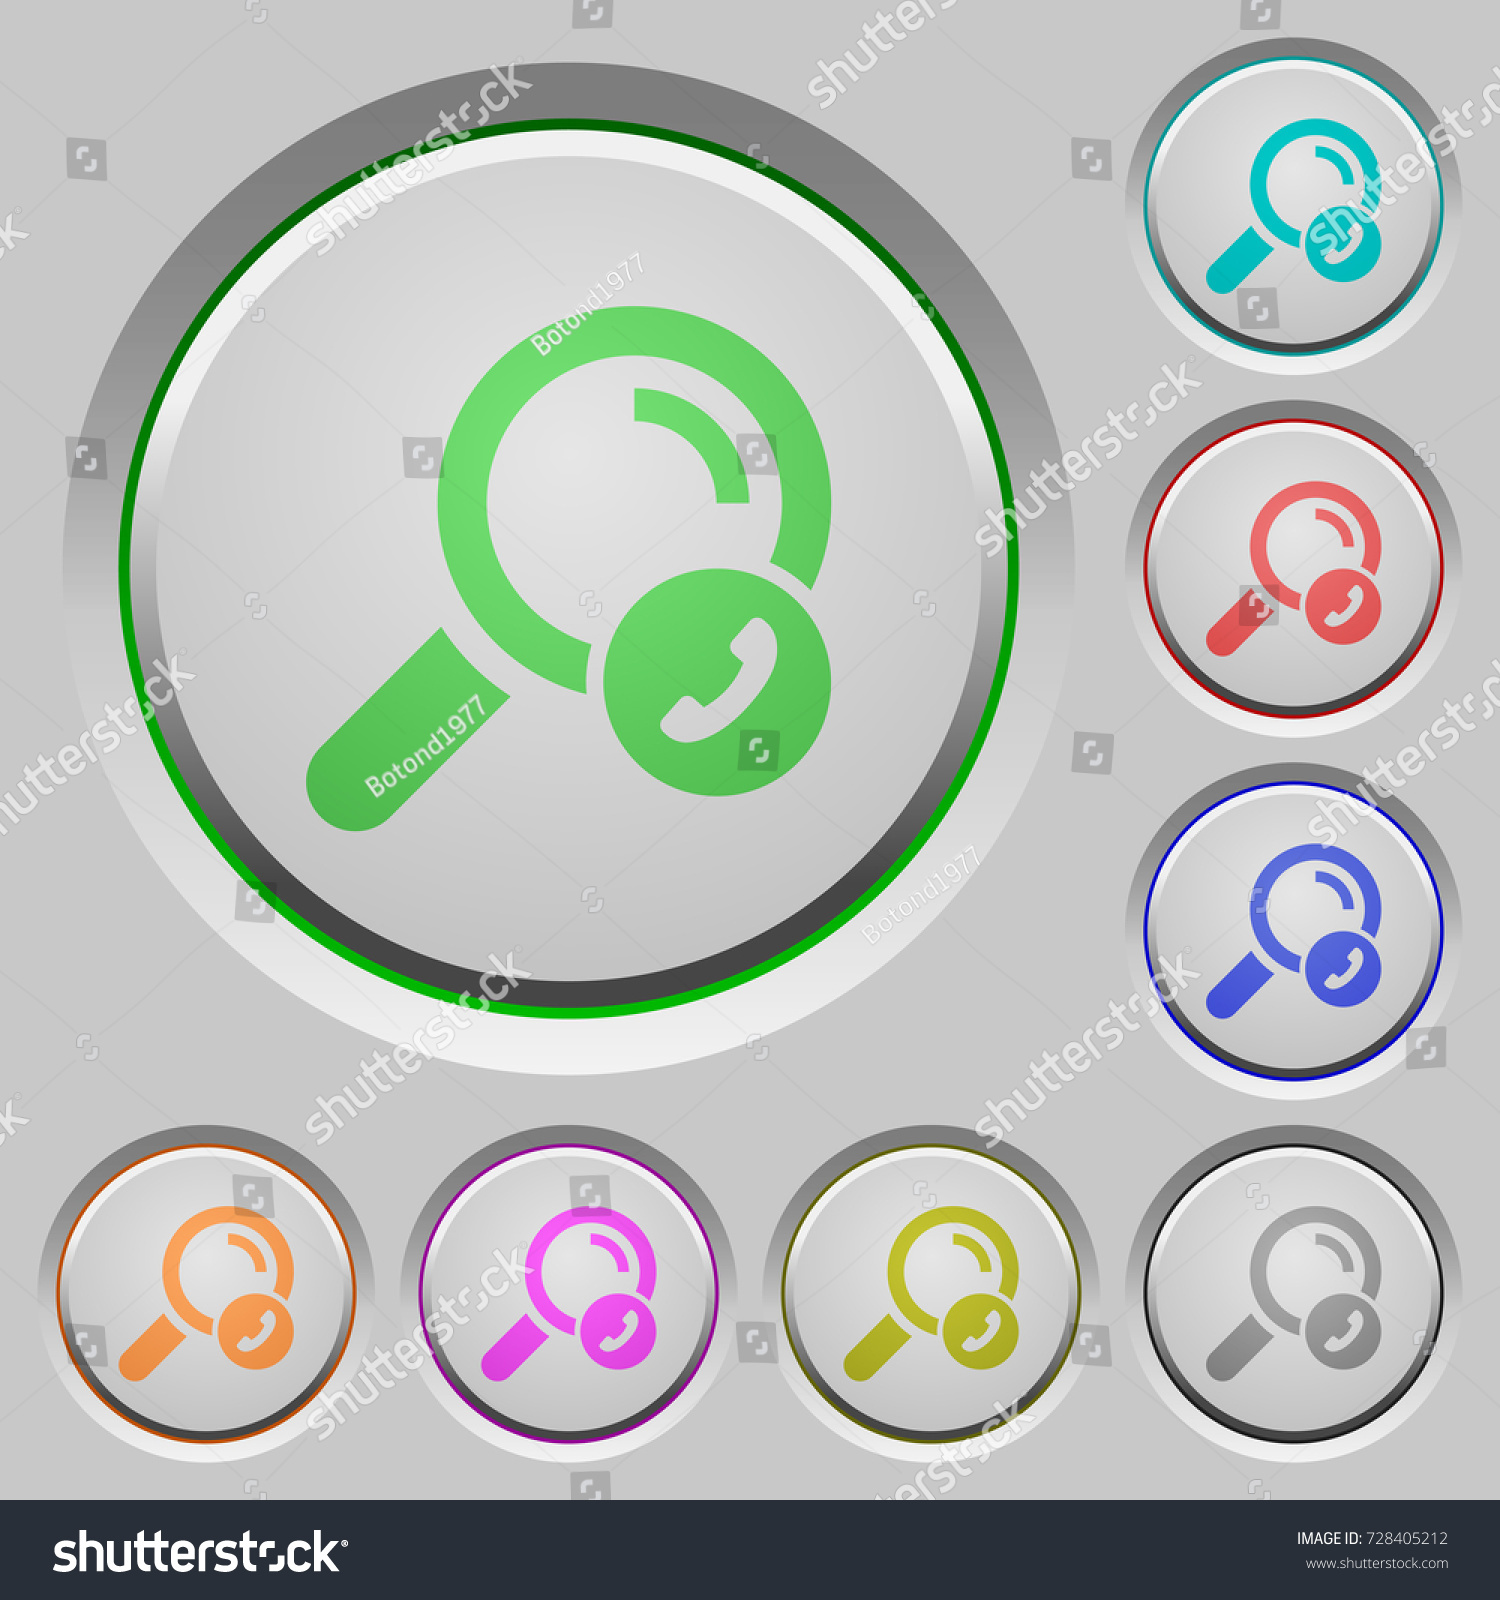 Search Phone Number Color Icons On Stock Vector (2018) 728405212 ...